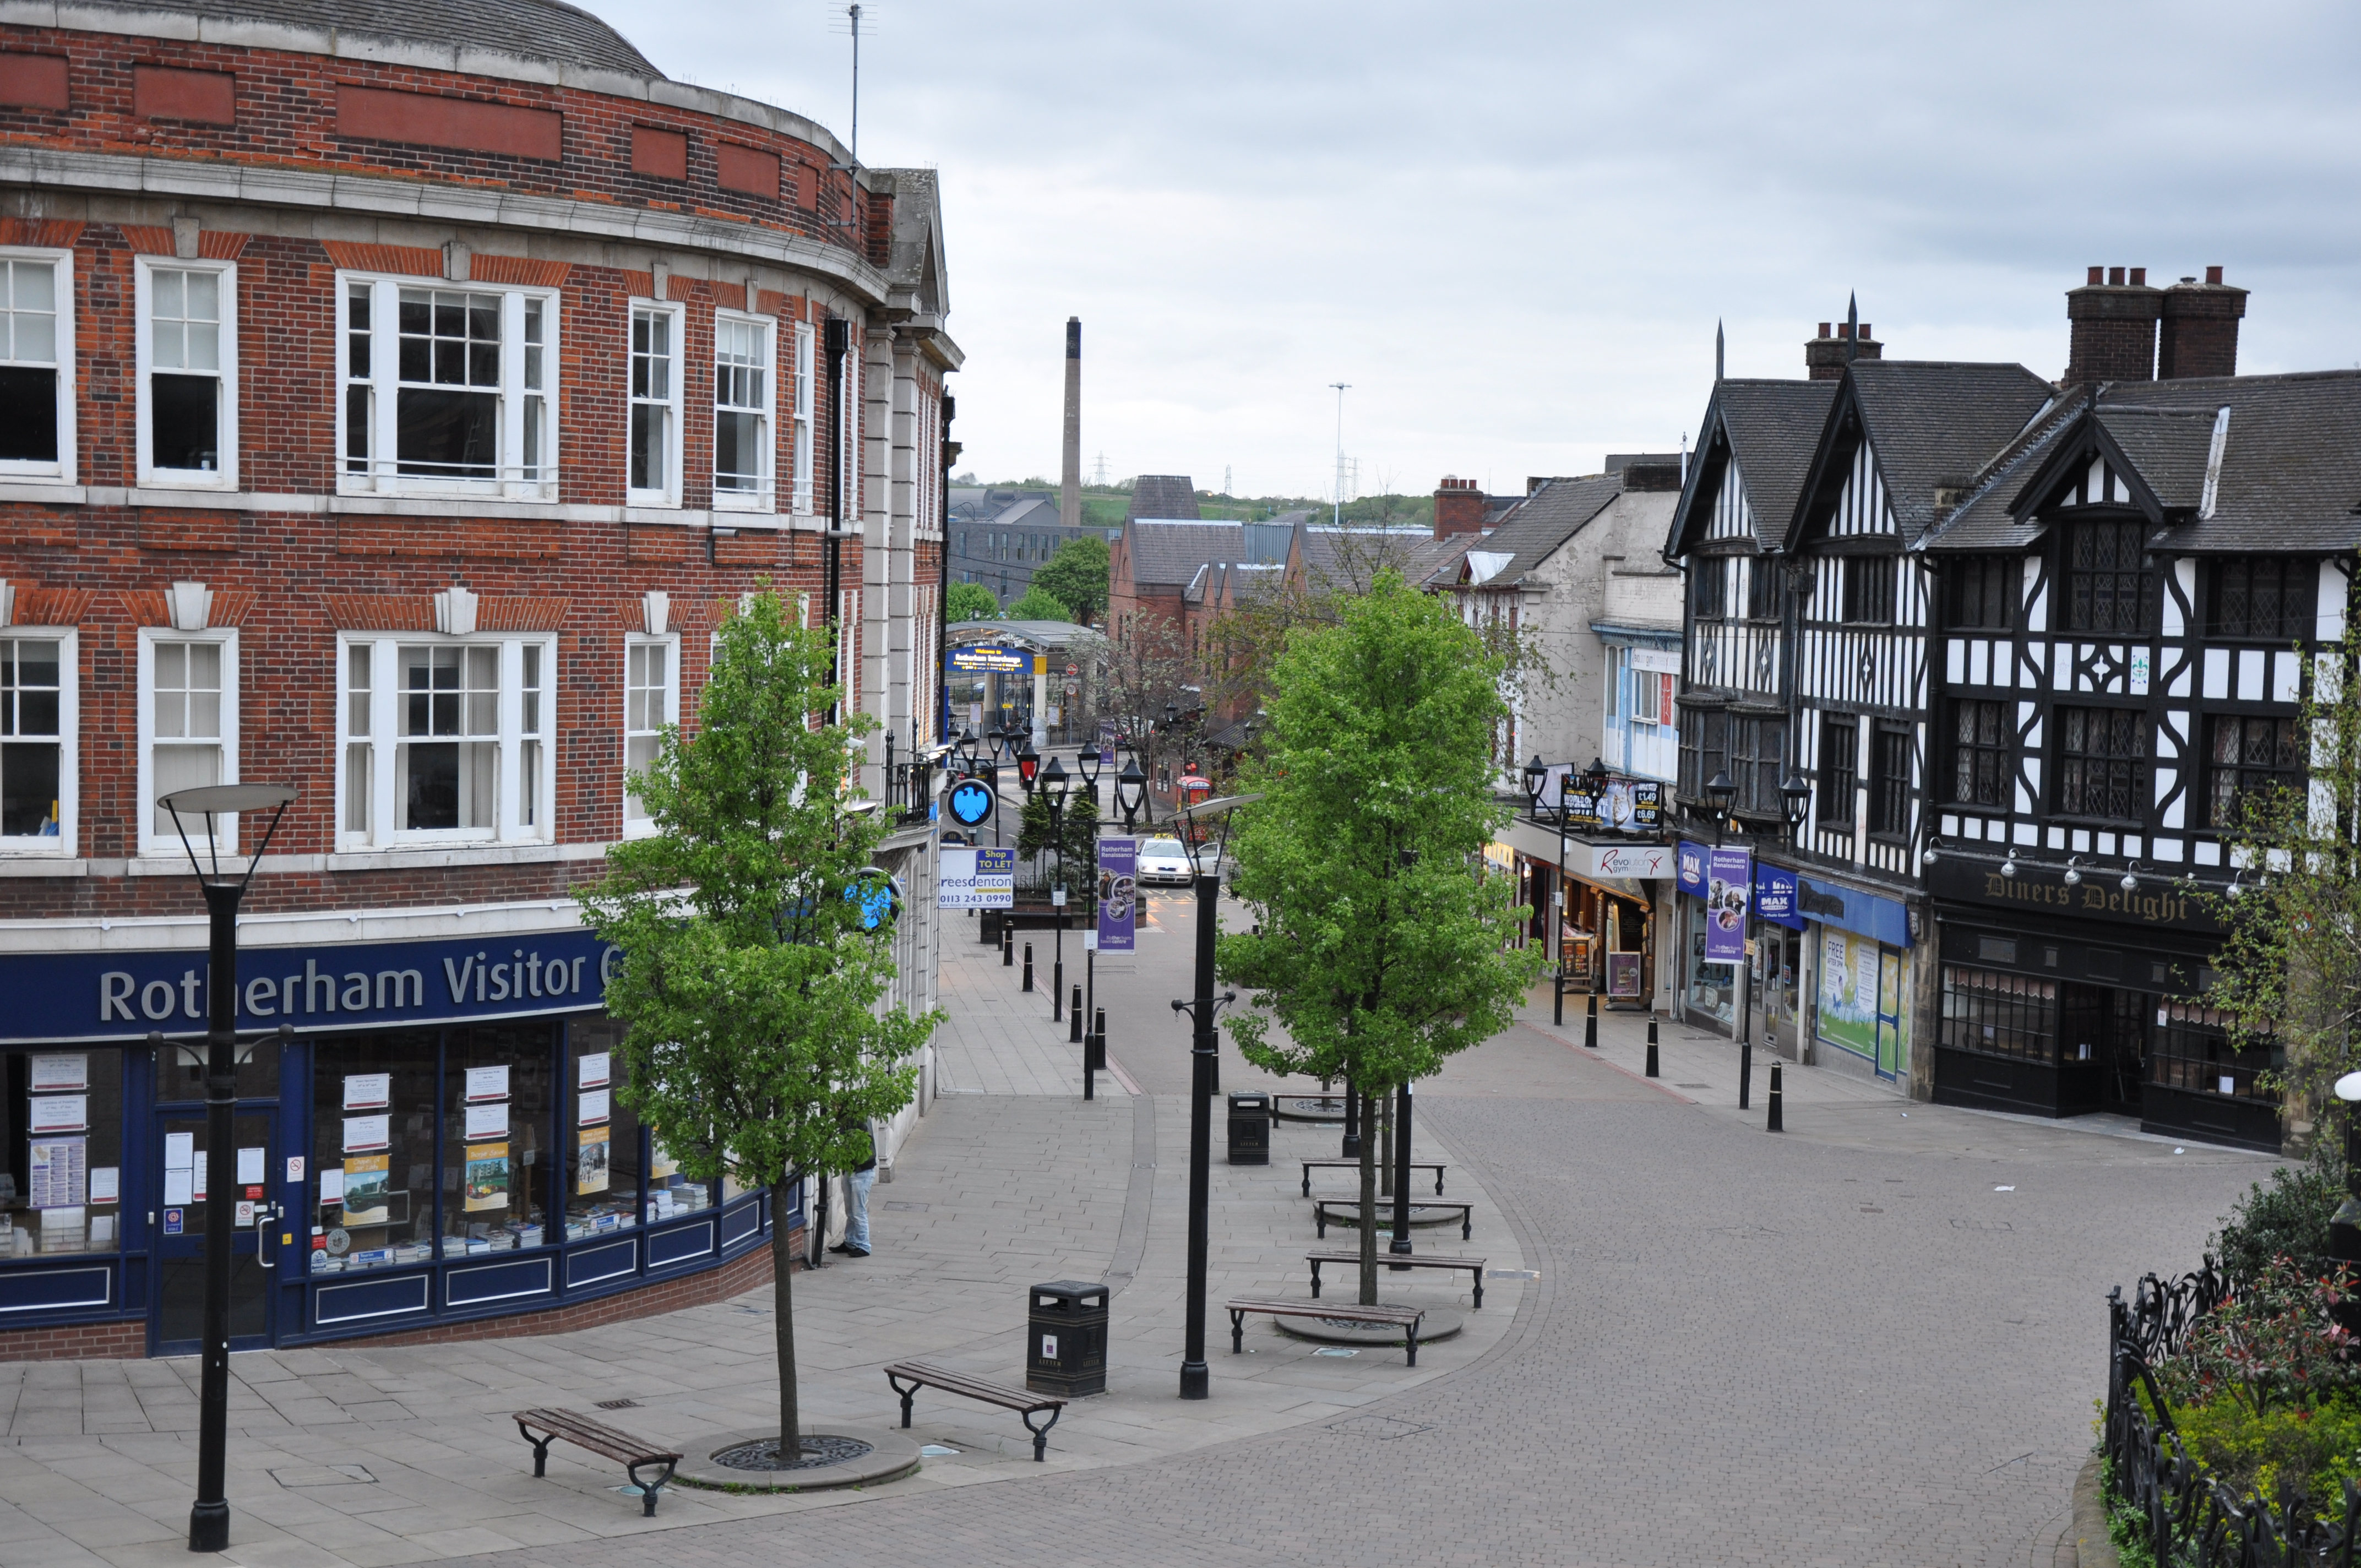 an image of the Rotherham town centre